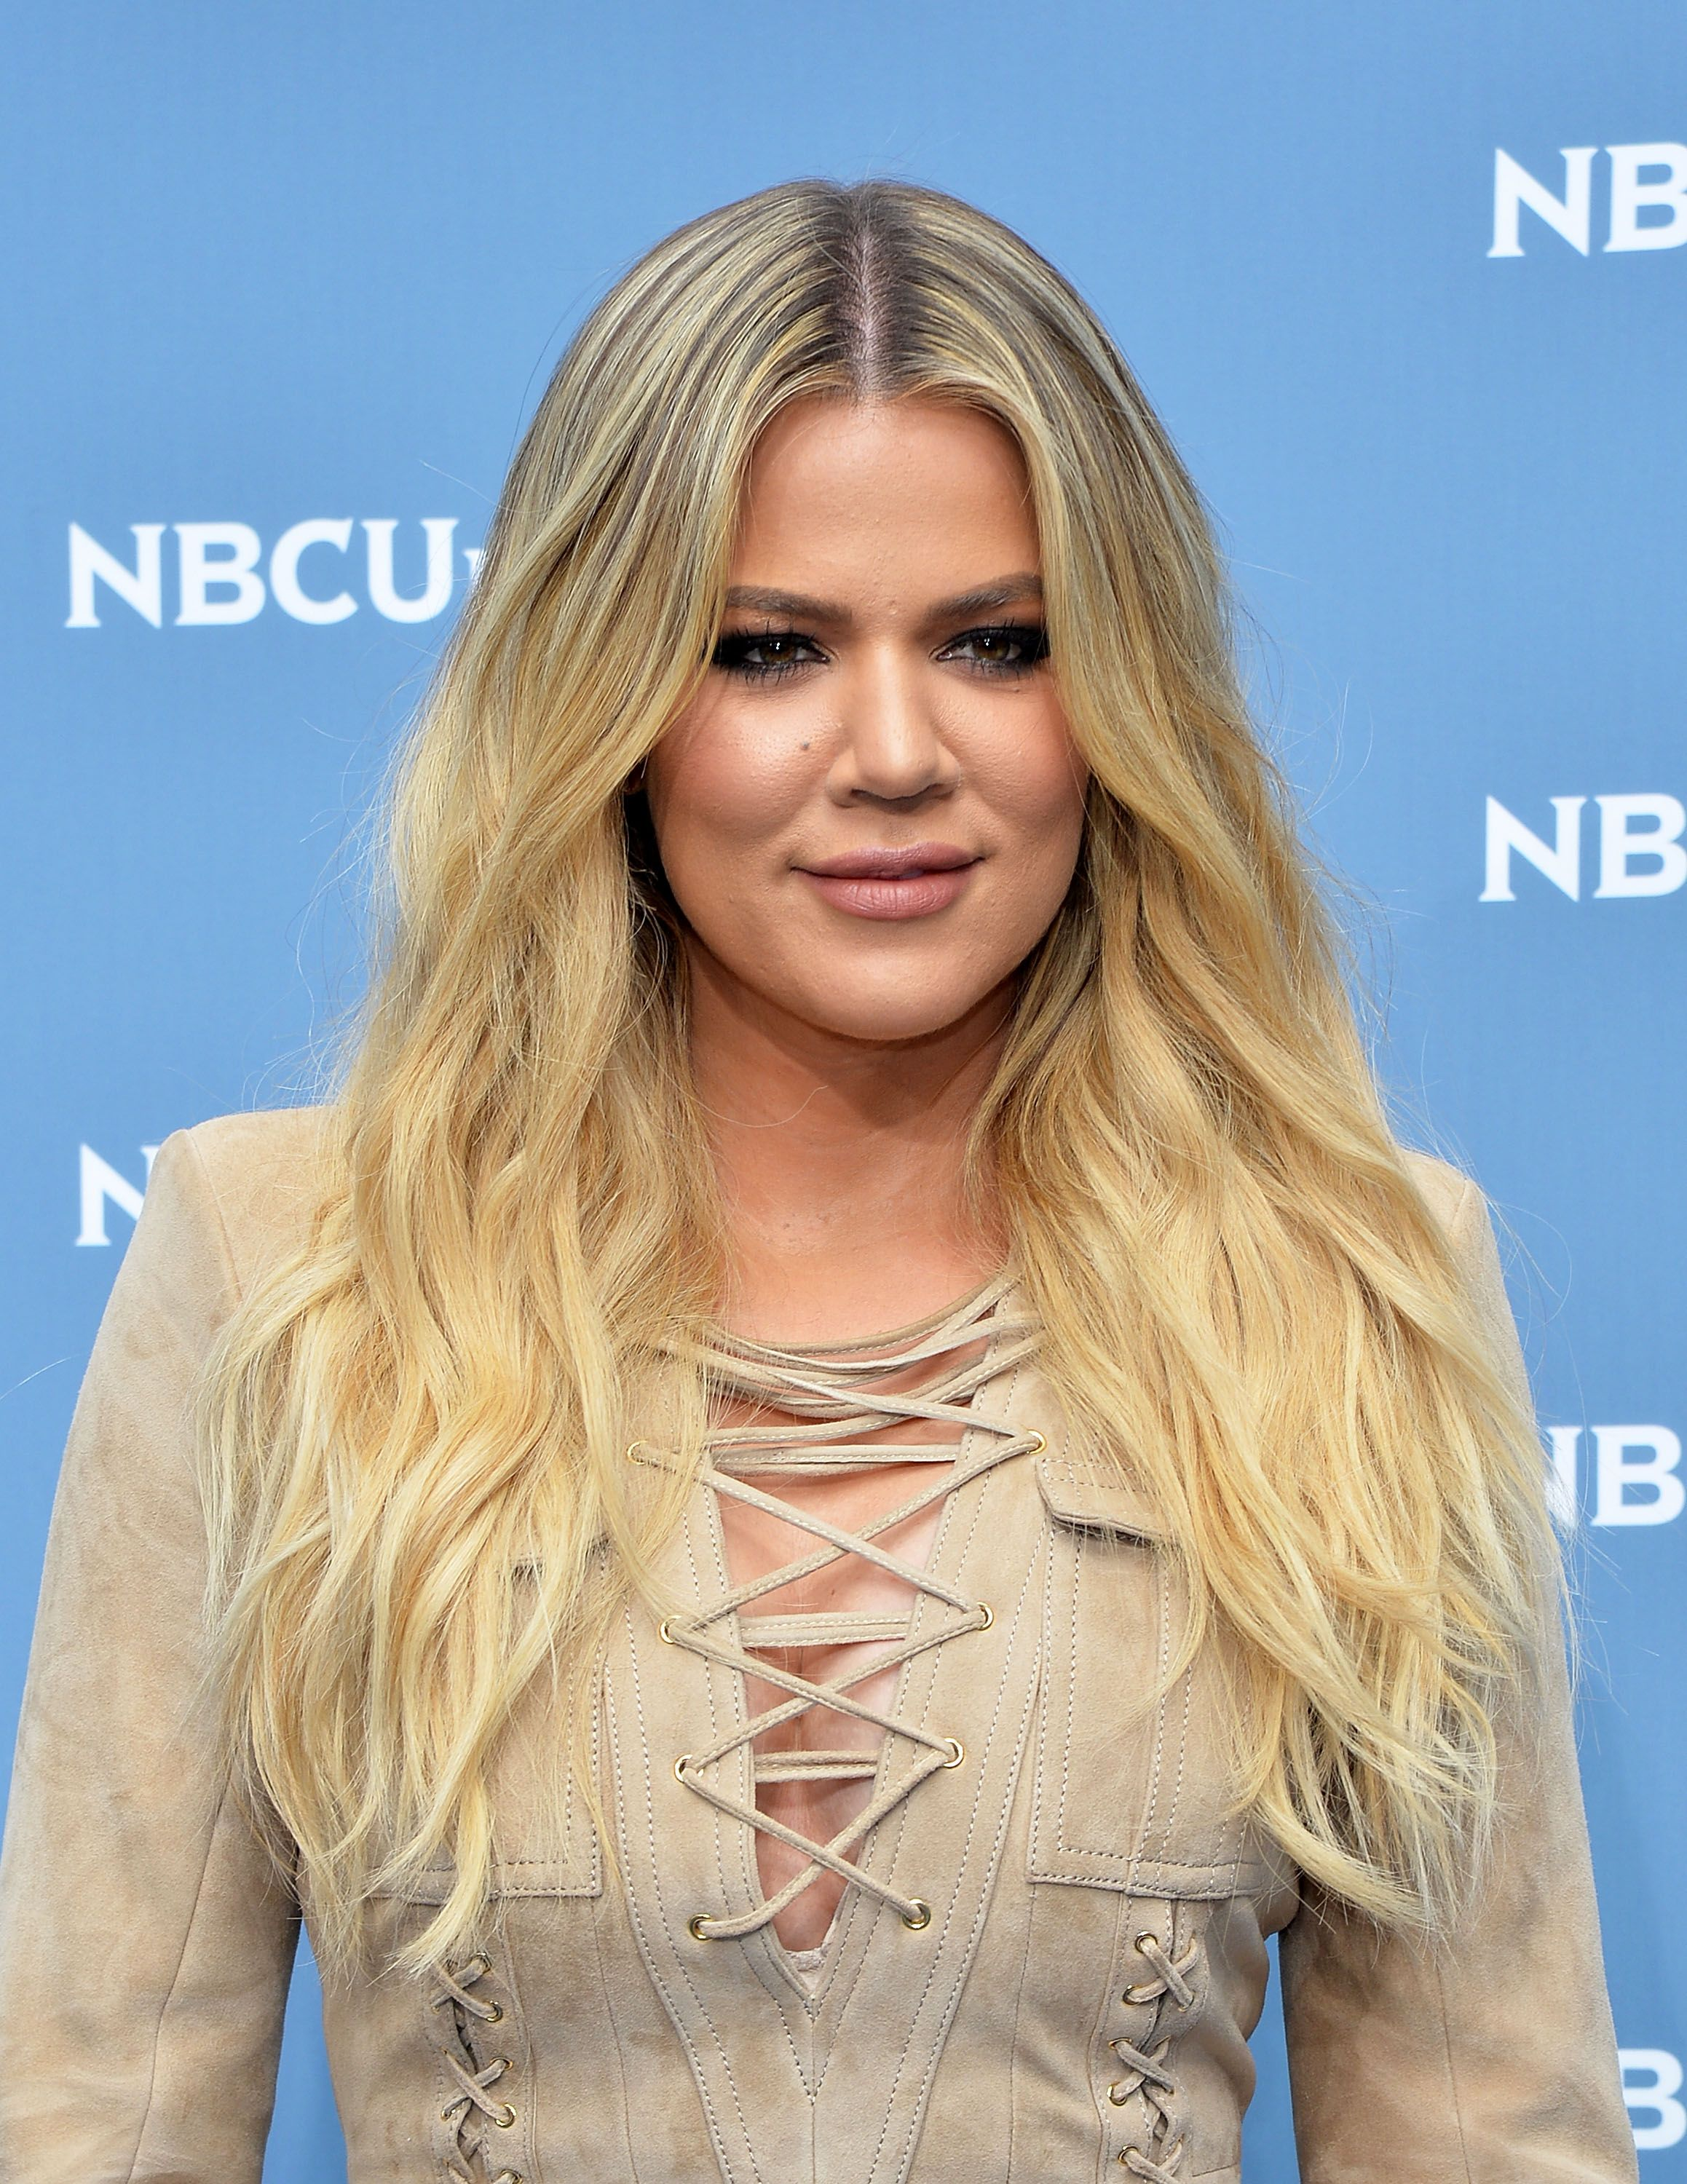 Khloé Kardashian at the NBCUniversal Upfront Presentation on May 16, 2016, in New York | Photo: Slaven Vlasic/Getty Images